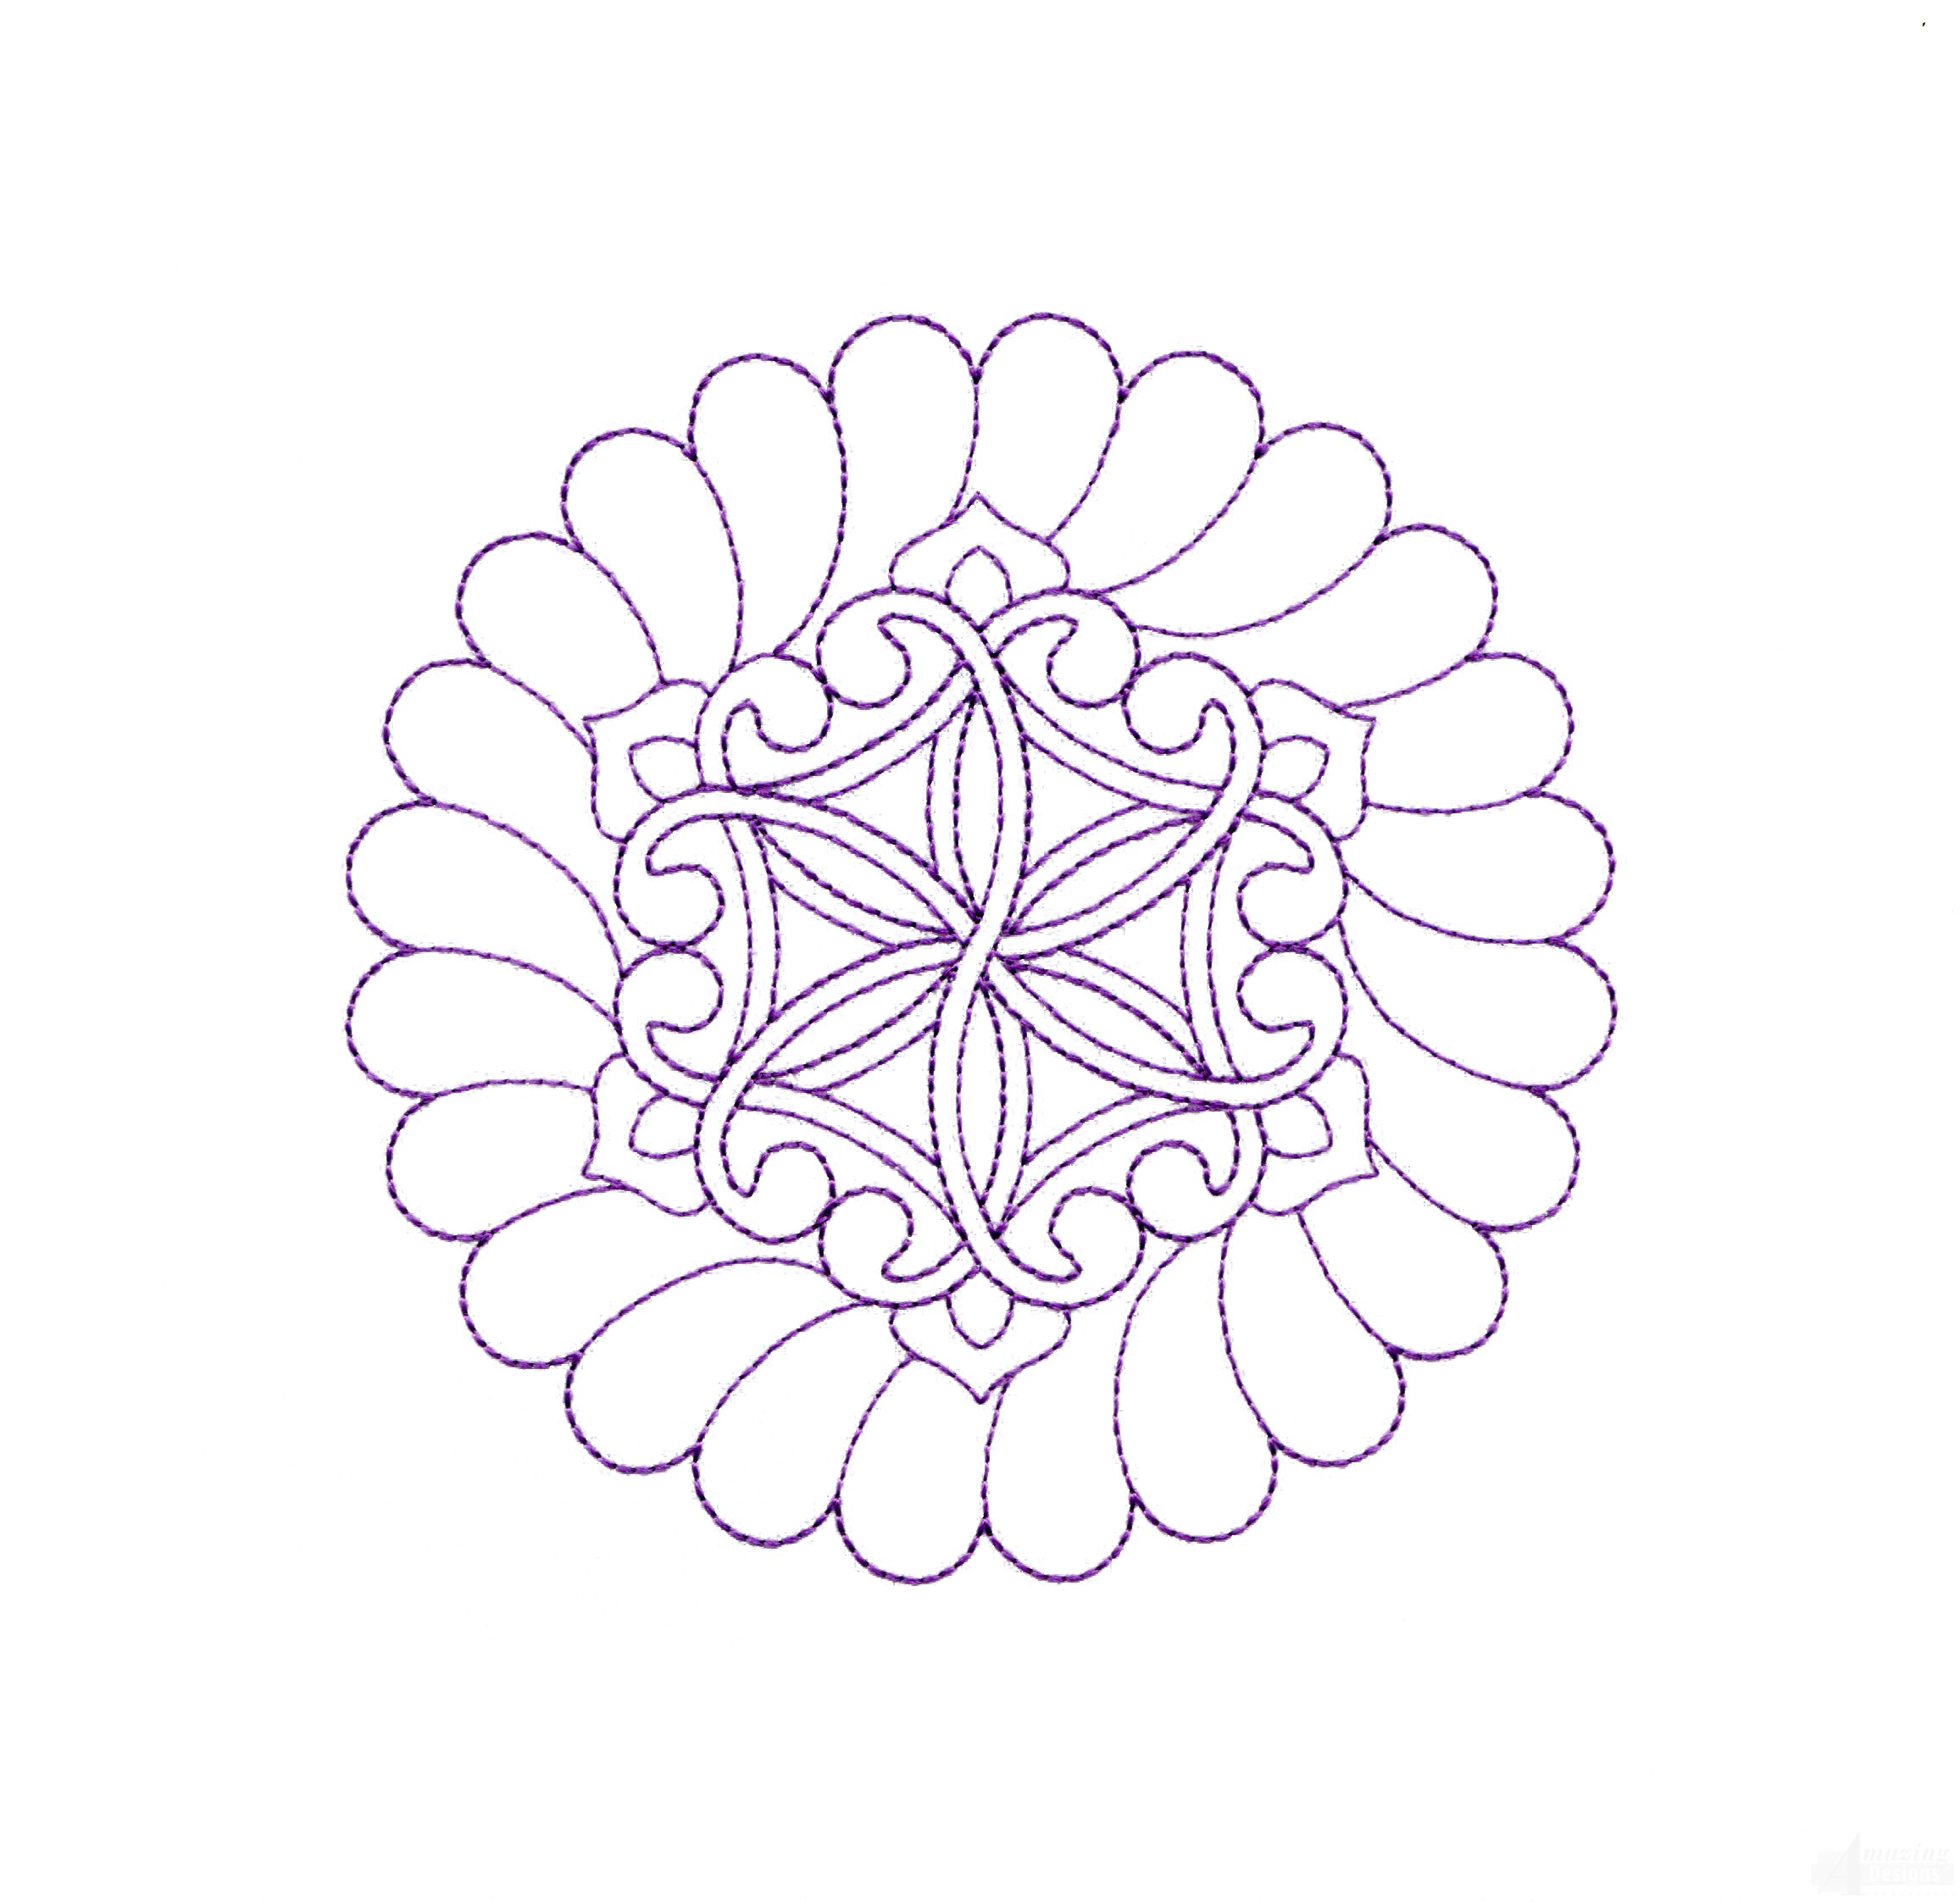 Rs123 Quilt Motif Embroidery Design